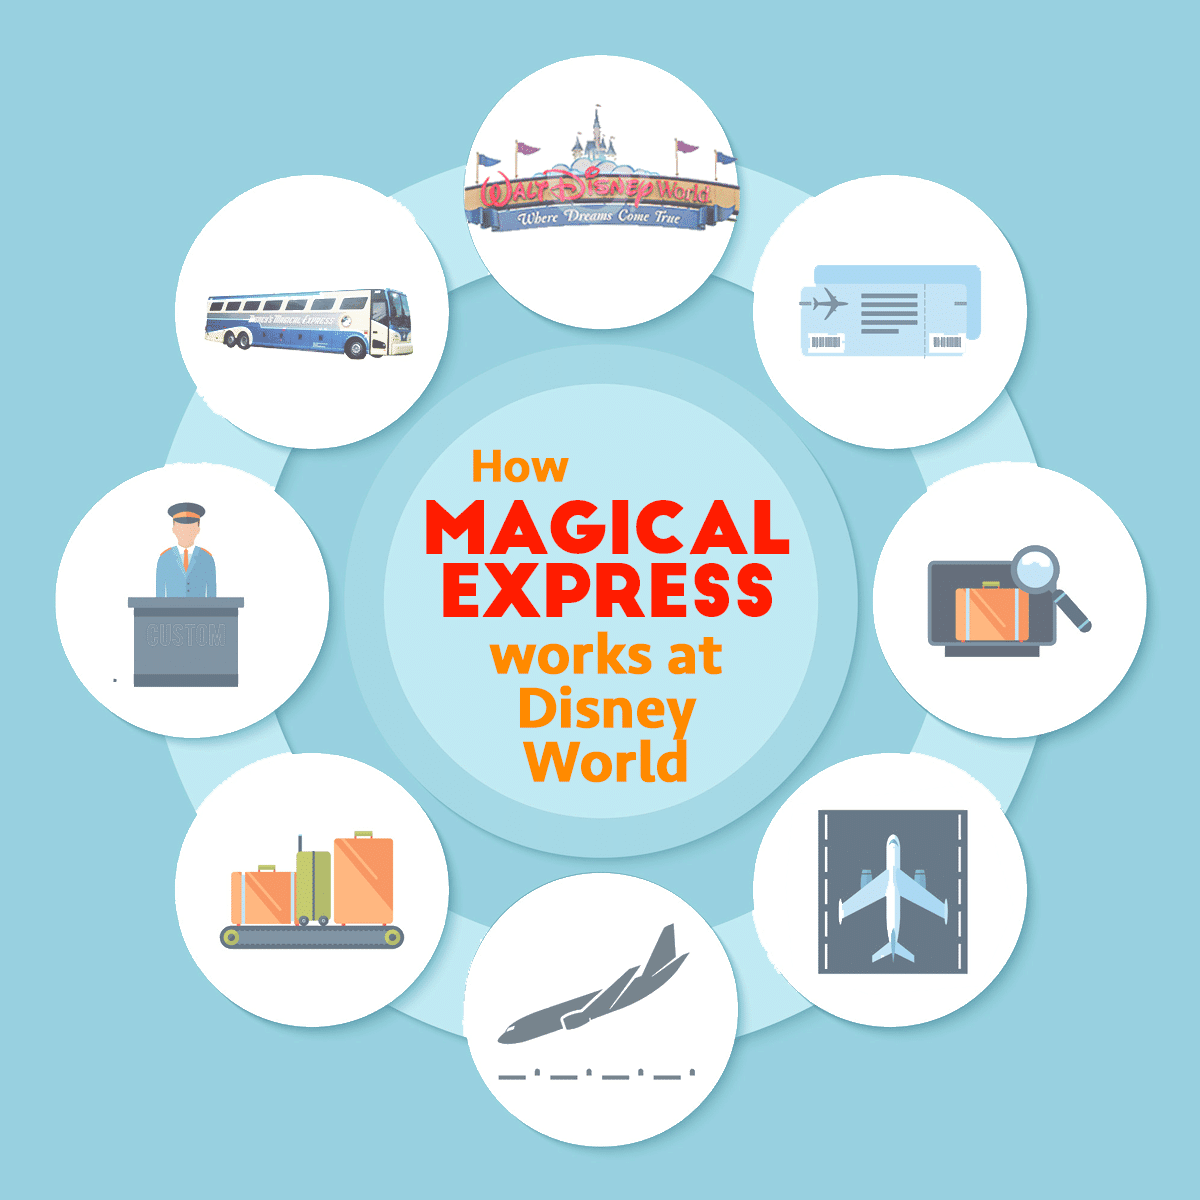 How Magical Express Works at Disney World